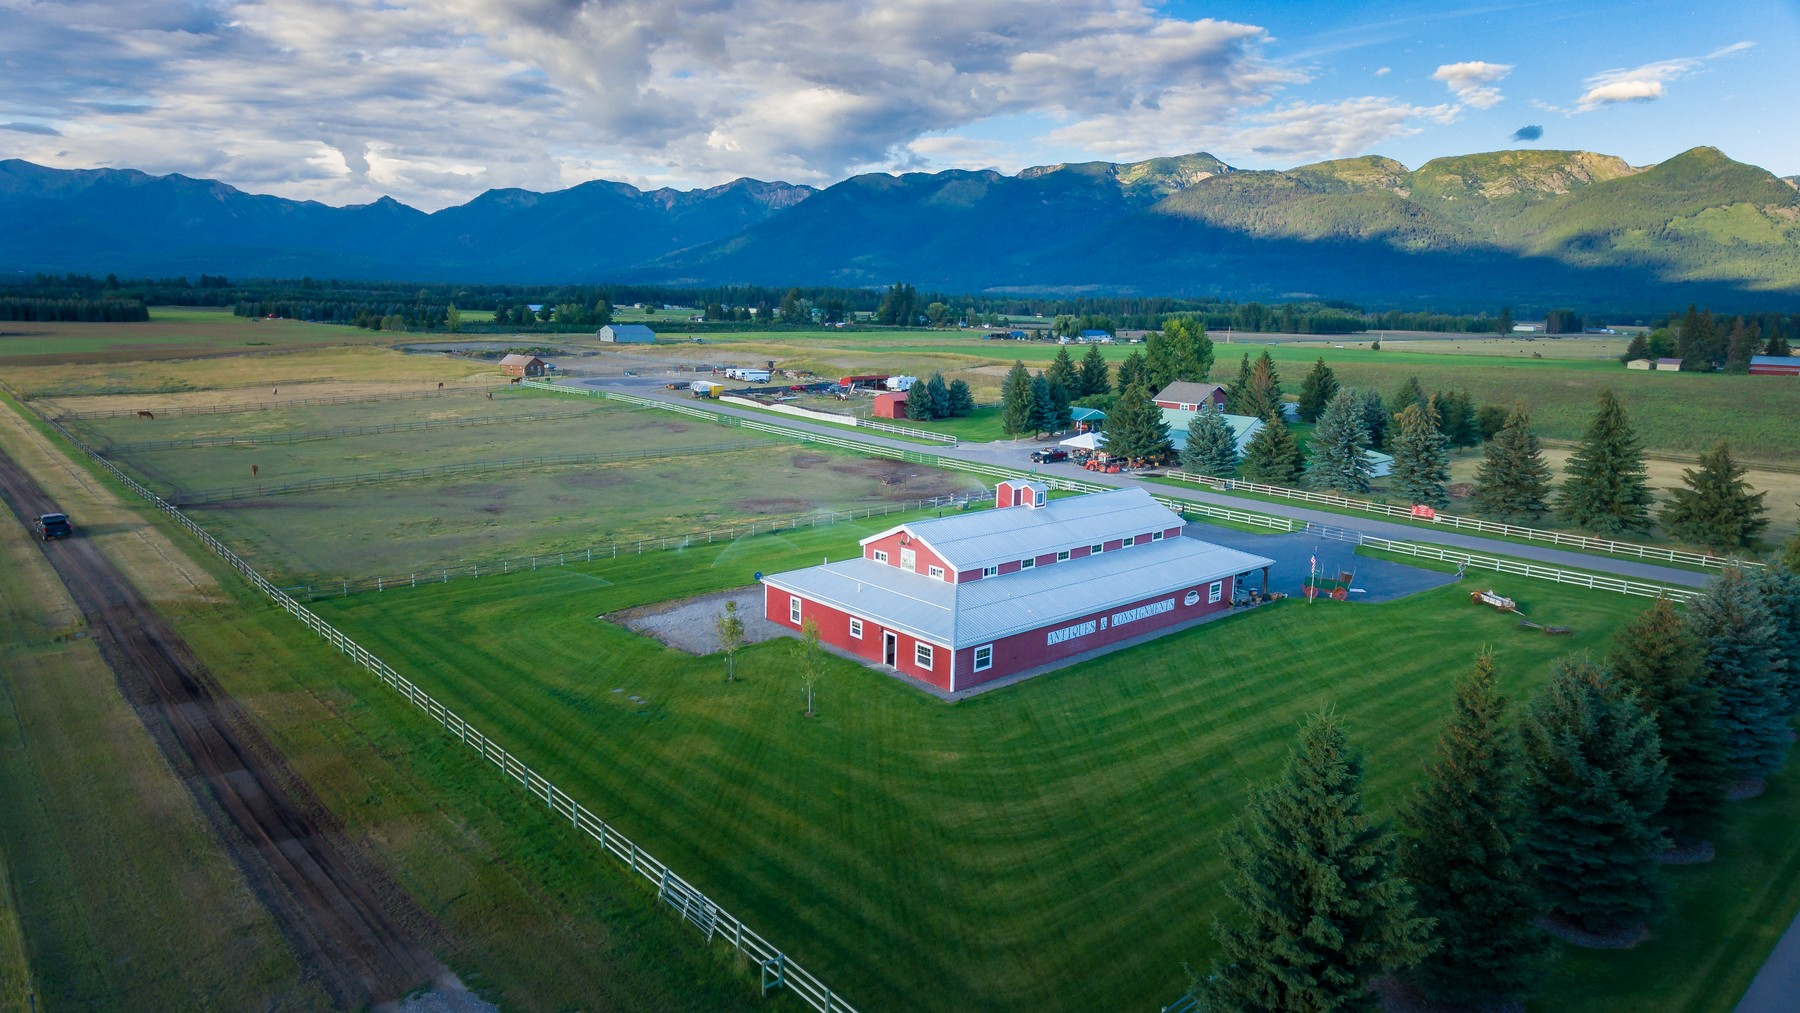 Land for Sale at 227 Hill Rd , Bigfork, MT 59911 227 Hill Rd Bigfork, Montana 59911 United States